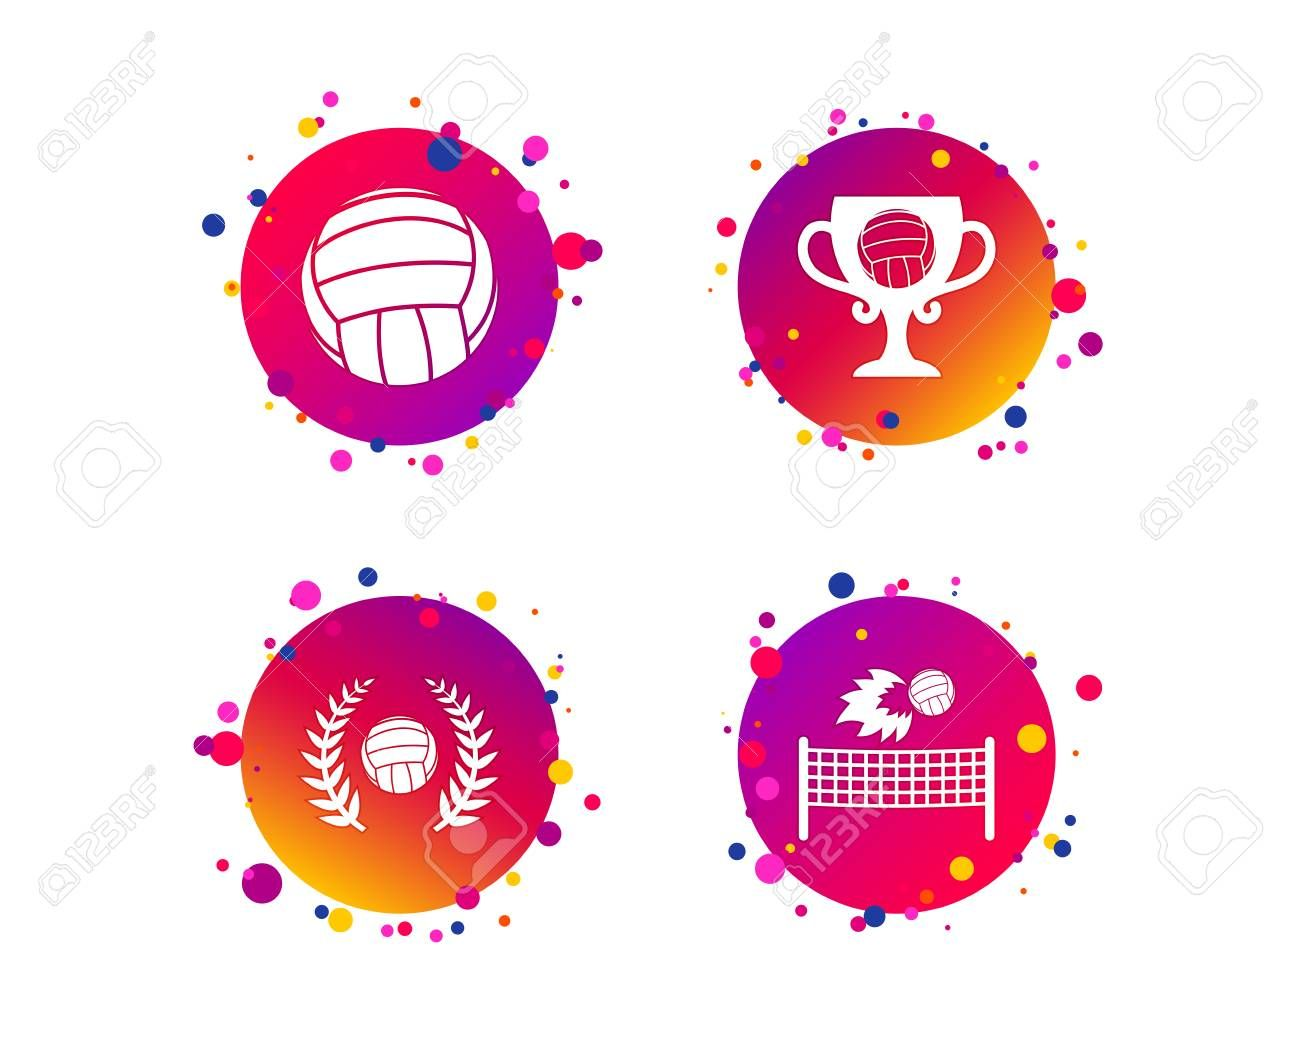 Volleyball And Net Icons Winner Award Cup And Laurel Wreath Symbols Beach Sport Symbol Gradient Circle Buttons Dots Design Wedding Card Design Laurel Wreath